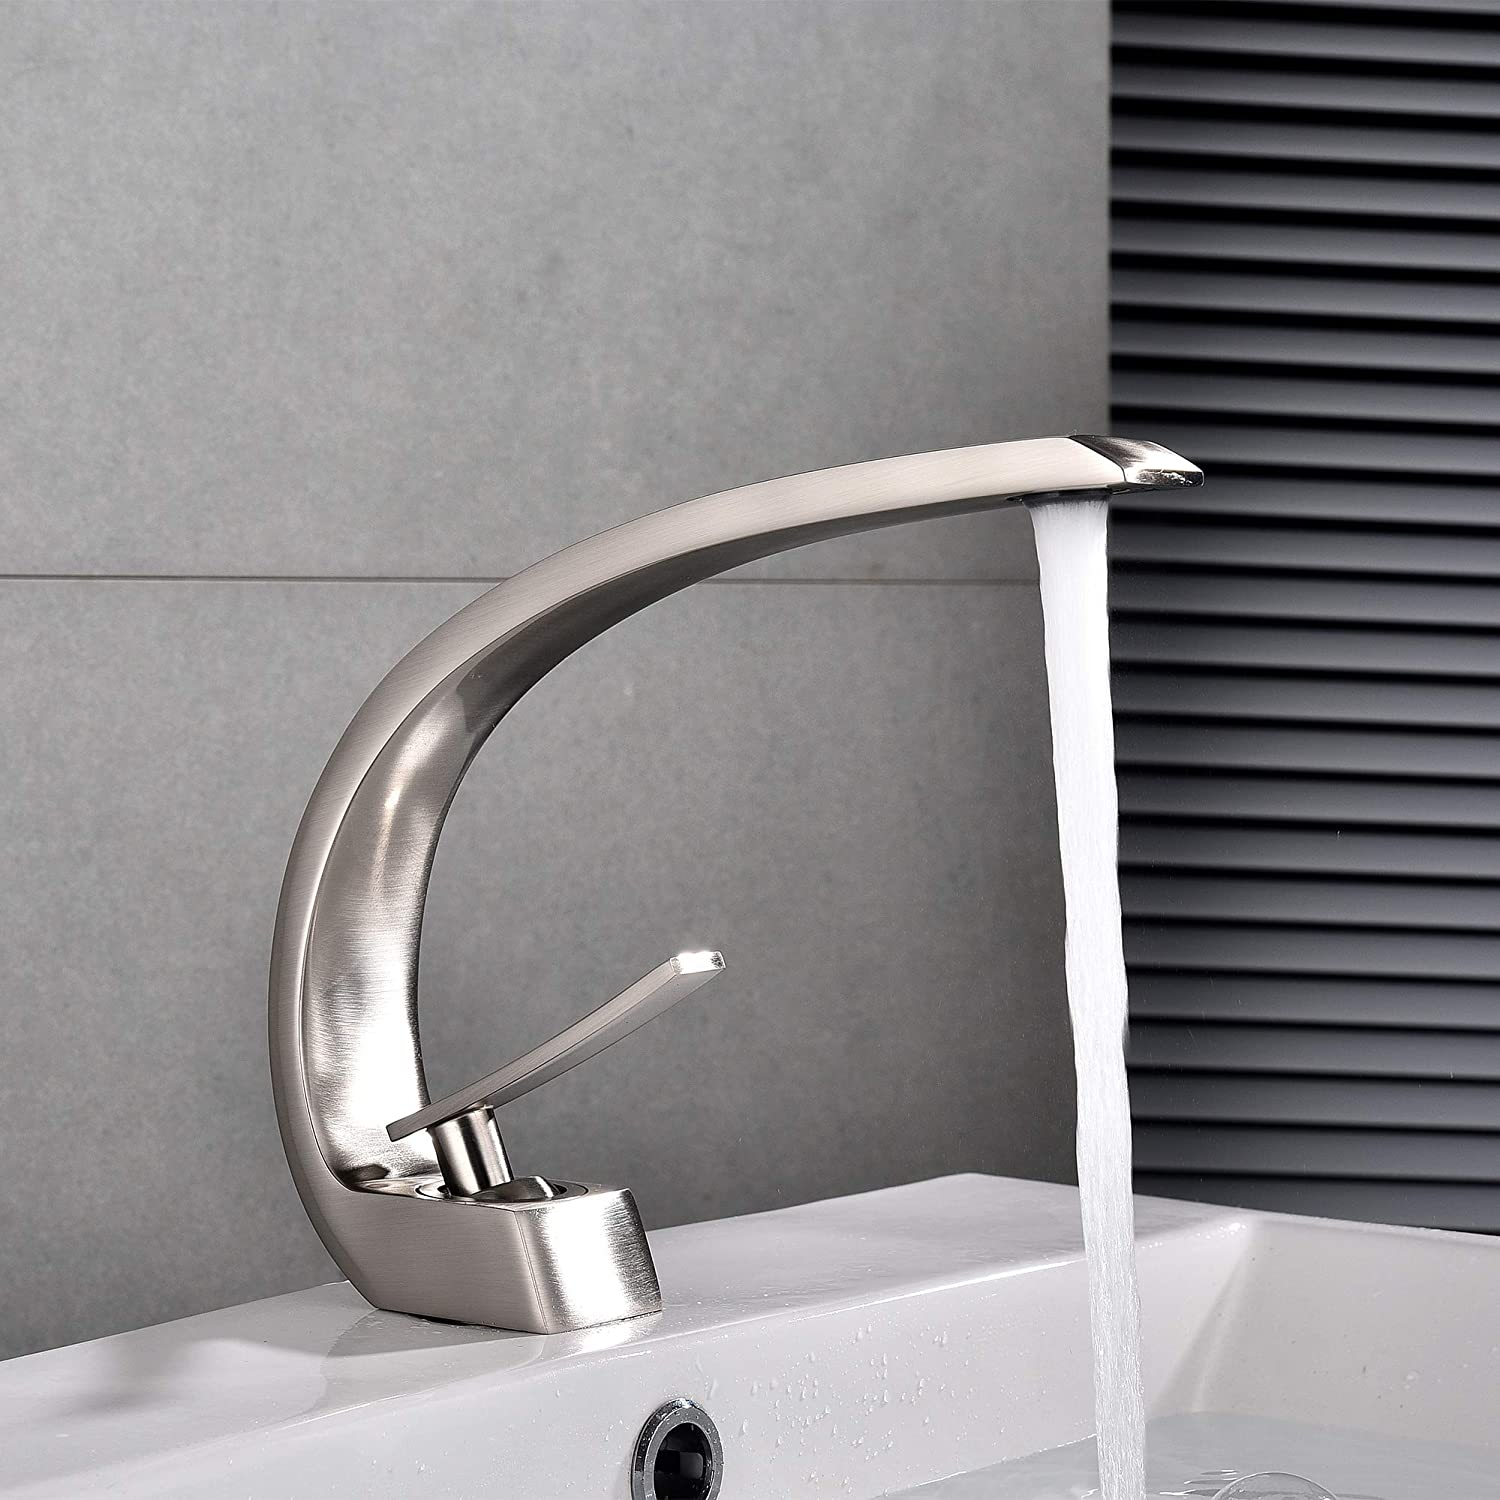 Brushed ZMHome Bathroom Countertop Basin Tap Copper Big Bend Single Handle Hot And Cold Water Basin Faucet,orange